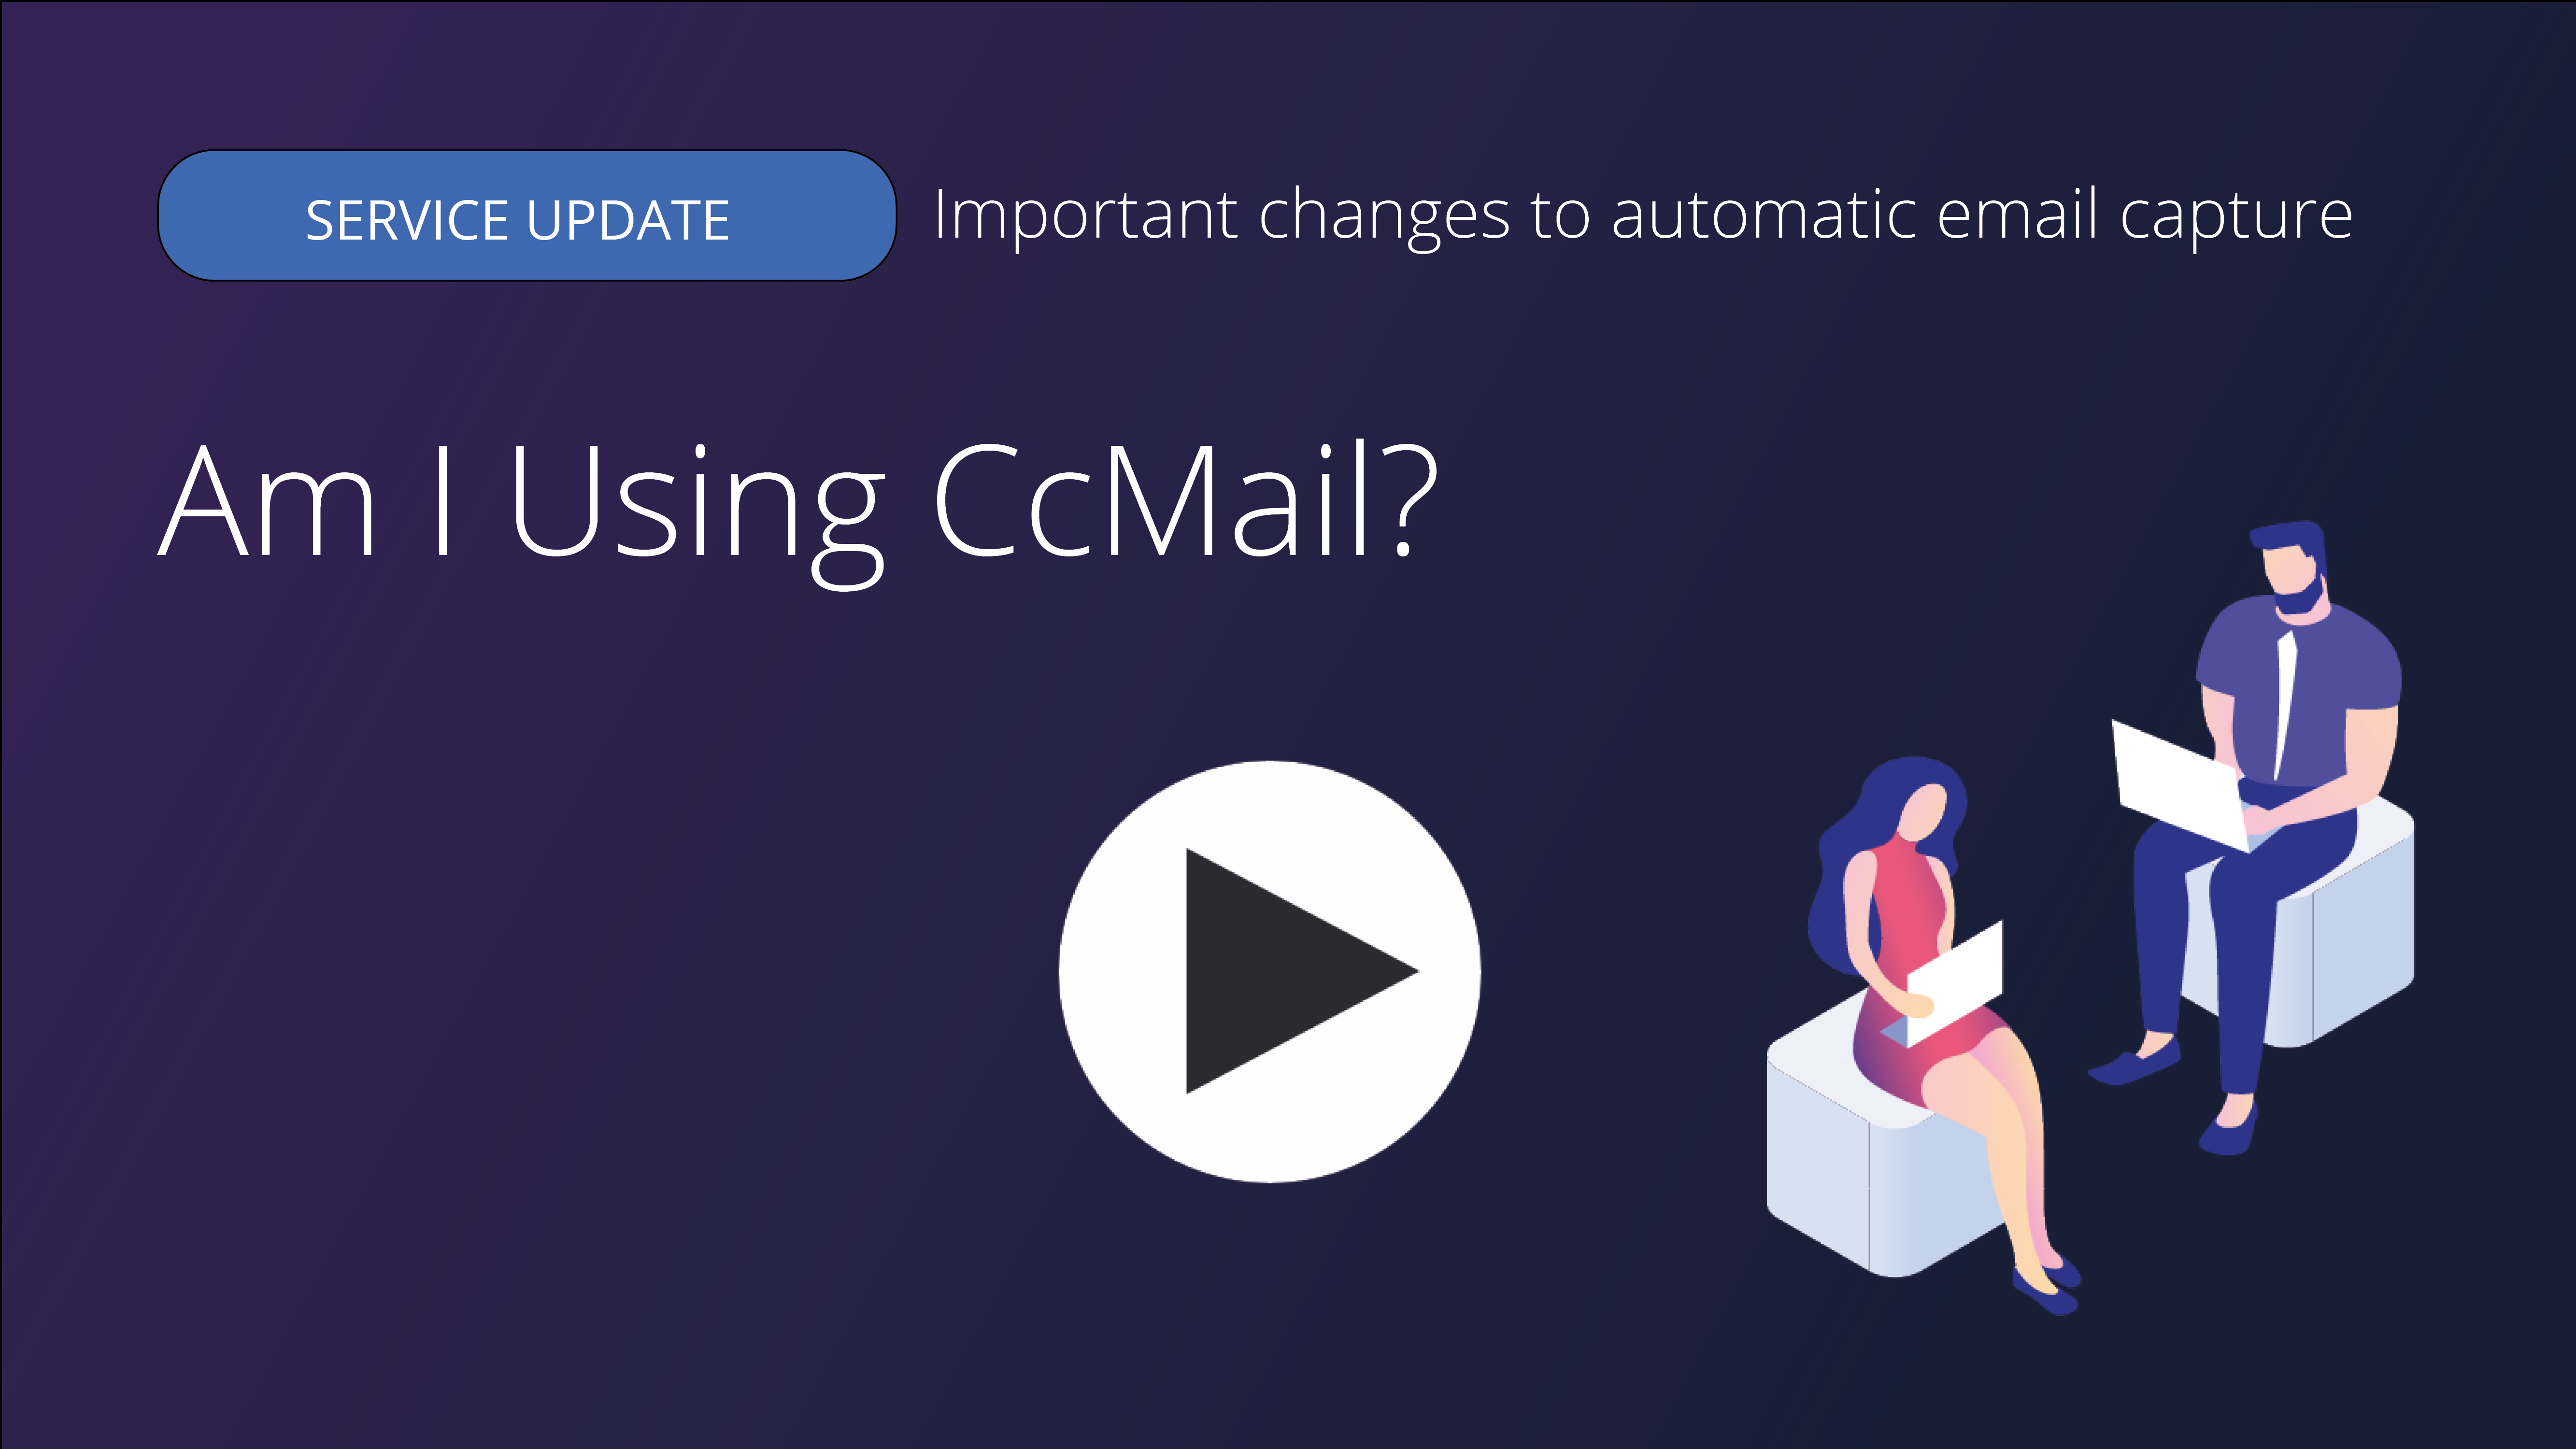 Am I using CCmail video